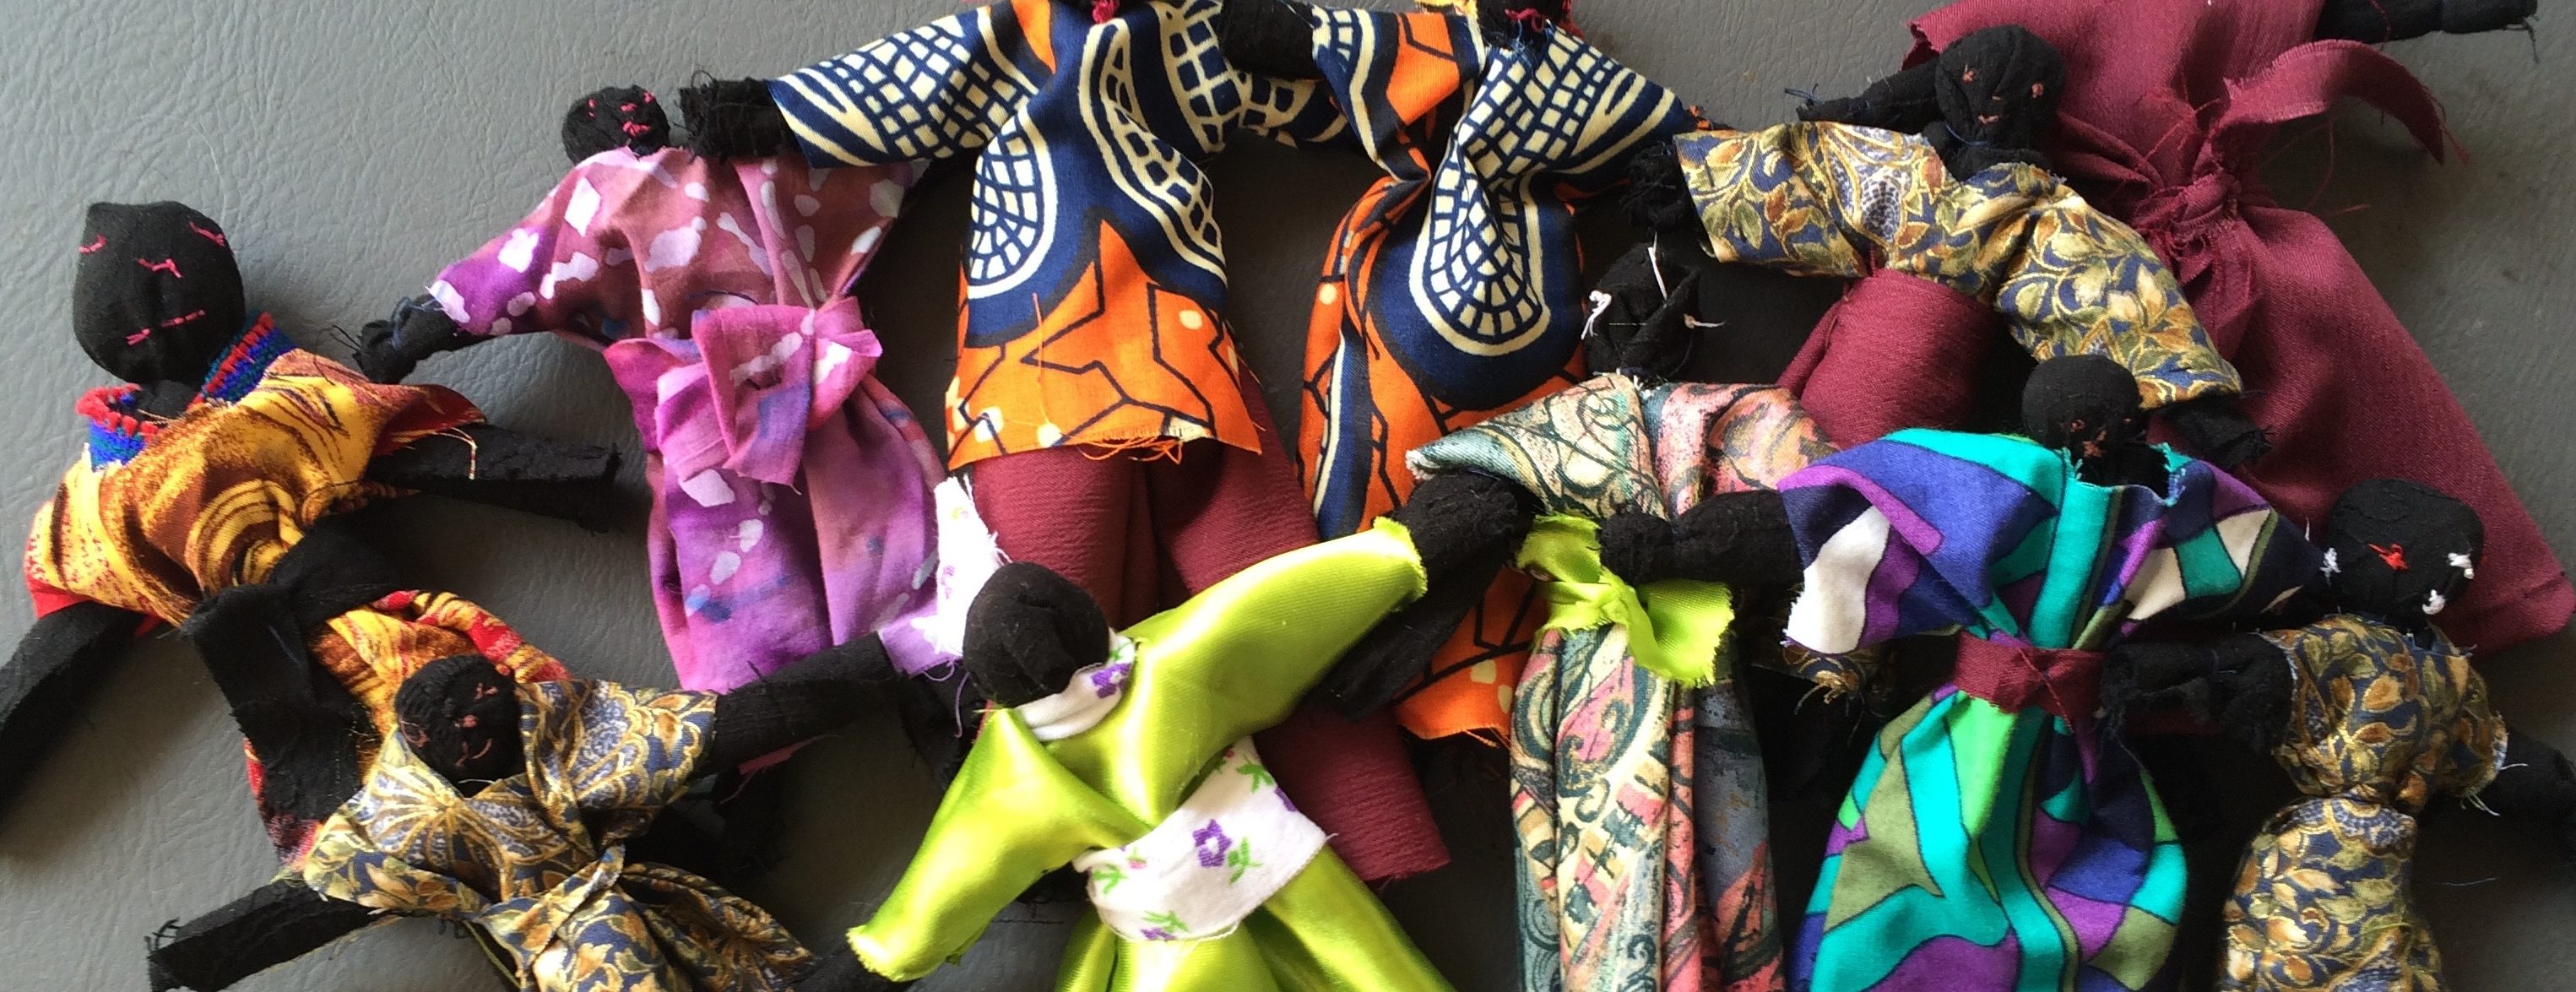 image of handmade dolls produced in an ukuthula project